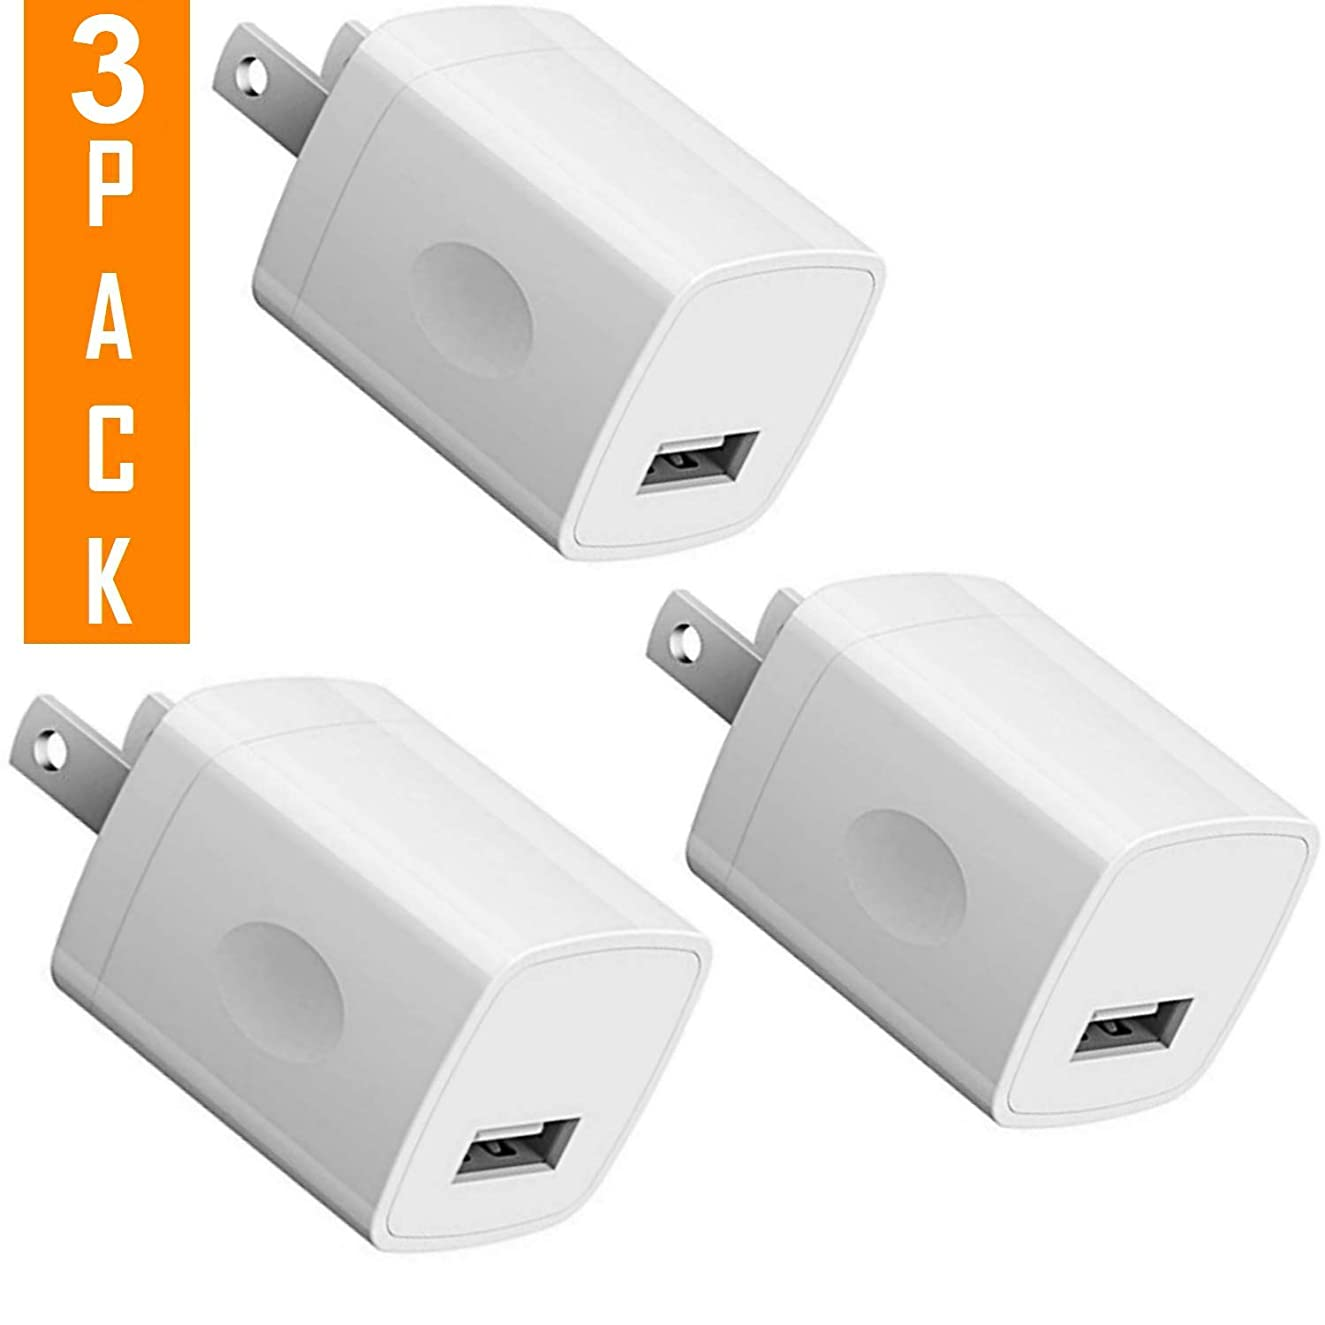 USB Wall Charger, 5V /1A Universal Portable Travel Adapter High Speed Rapid 1.0A Output Compatible with iPhone iPad Apple iPhone, iPad, Samsung Galaxy, Note, HTC, LG & More (White) (3-Pack)